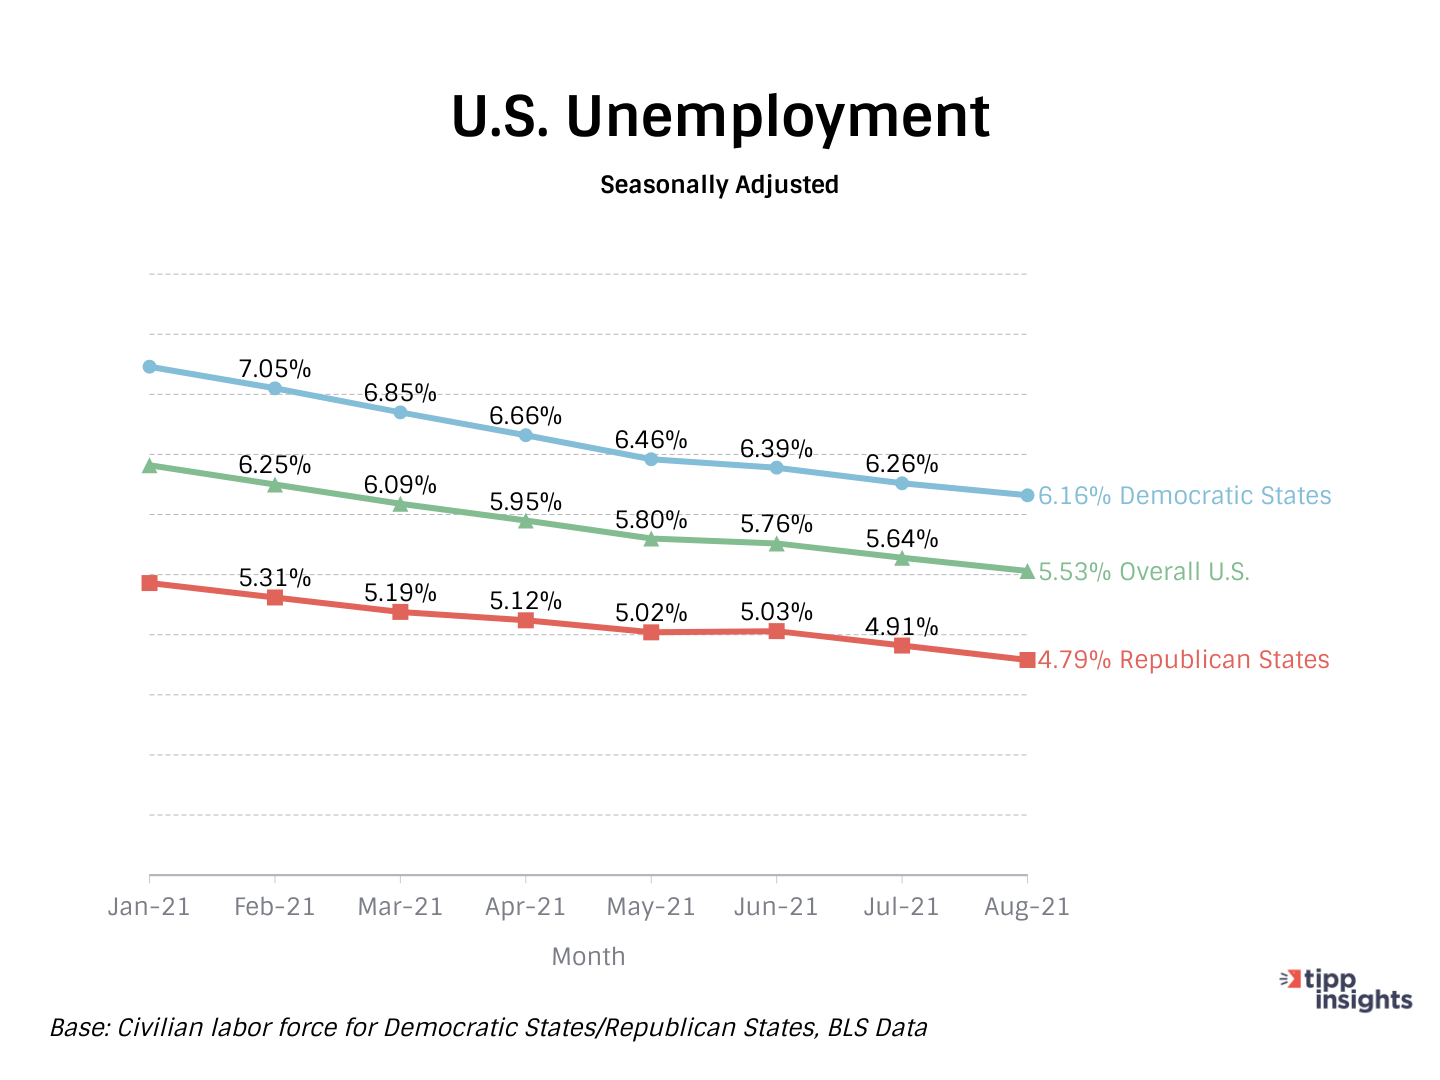 BLS Data on Unemployment in the United States